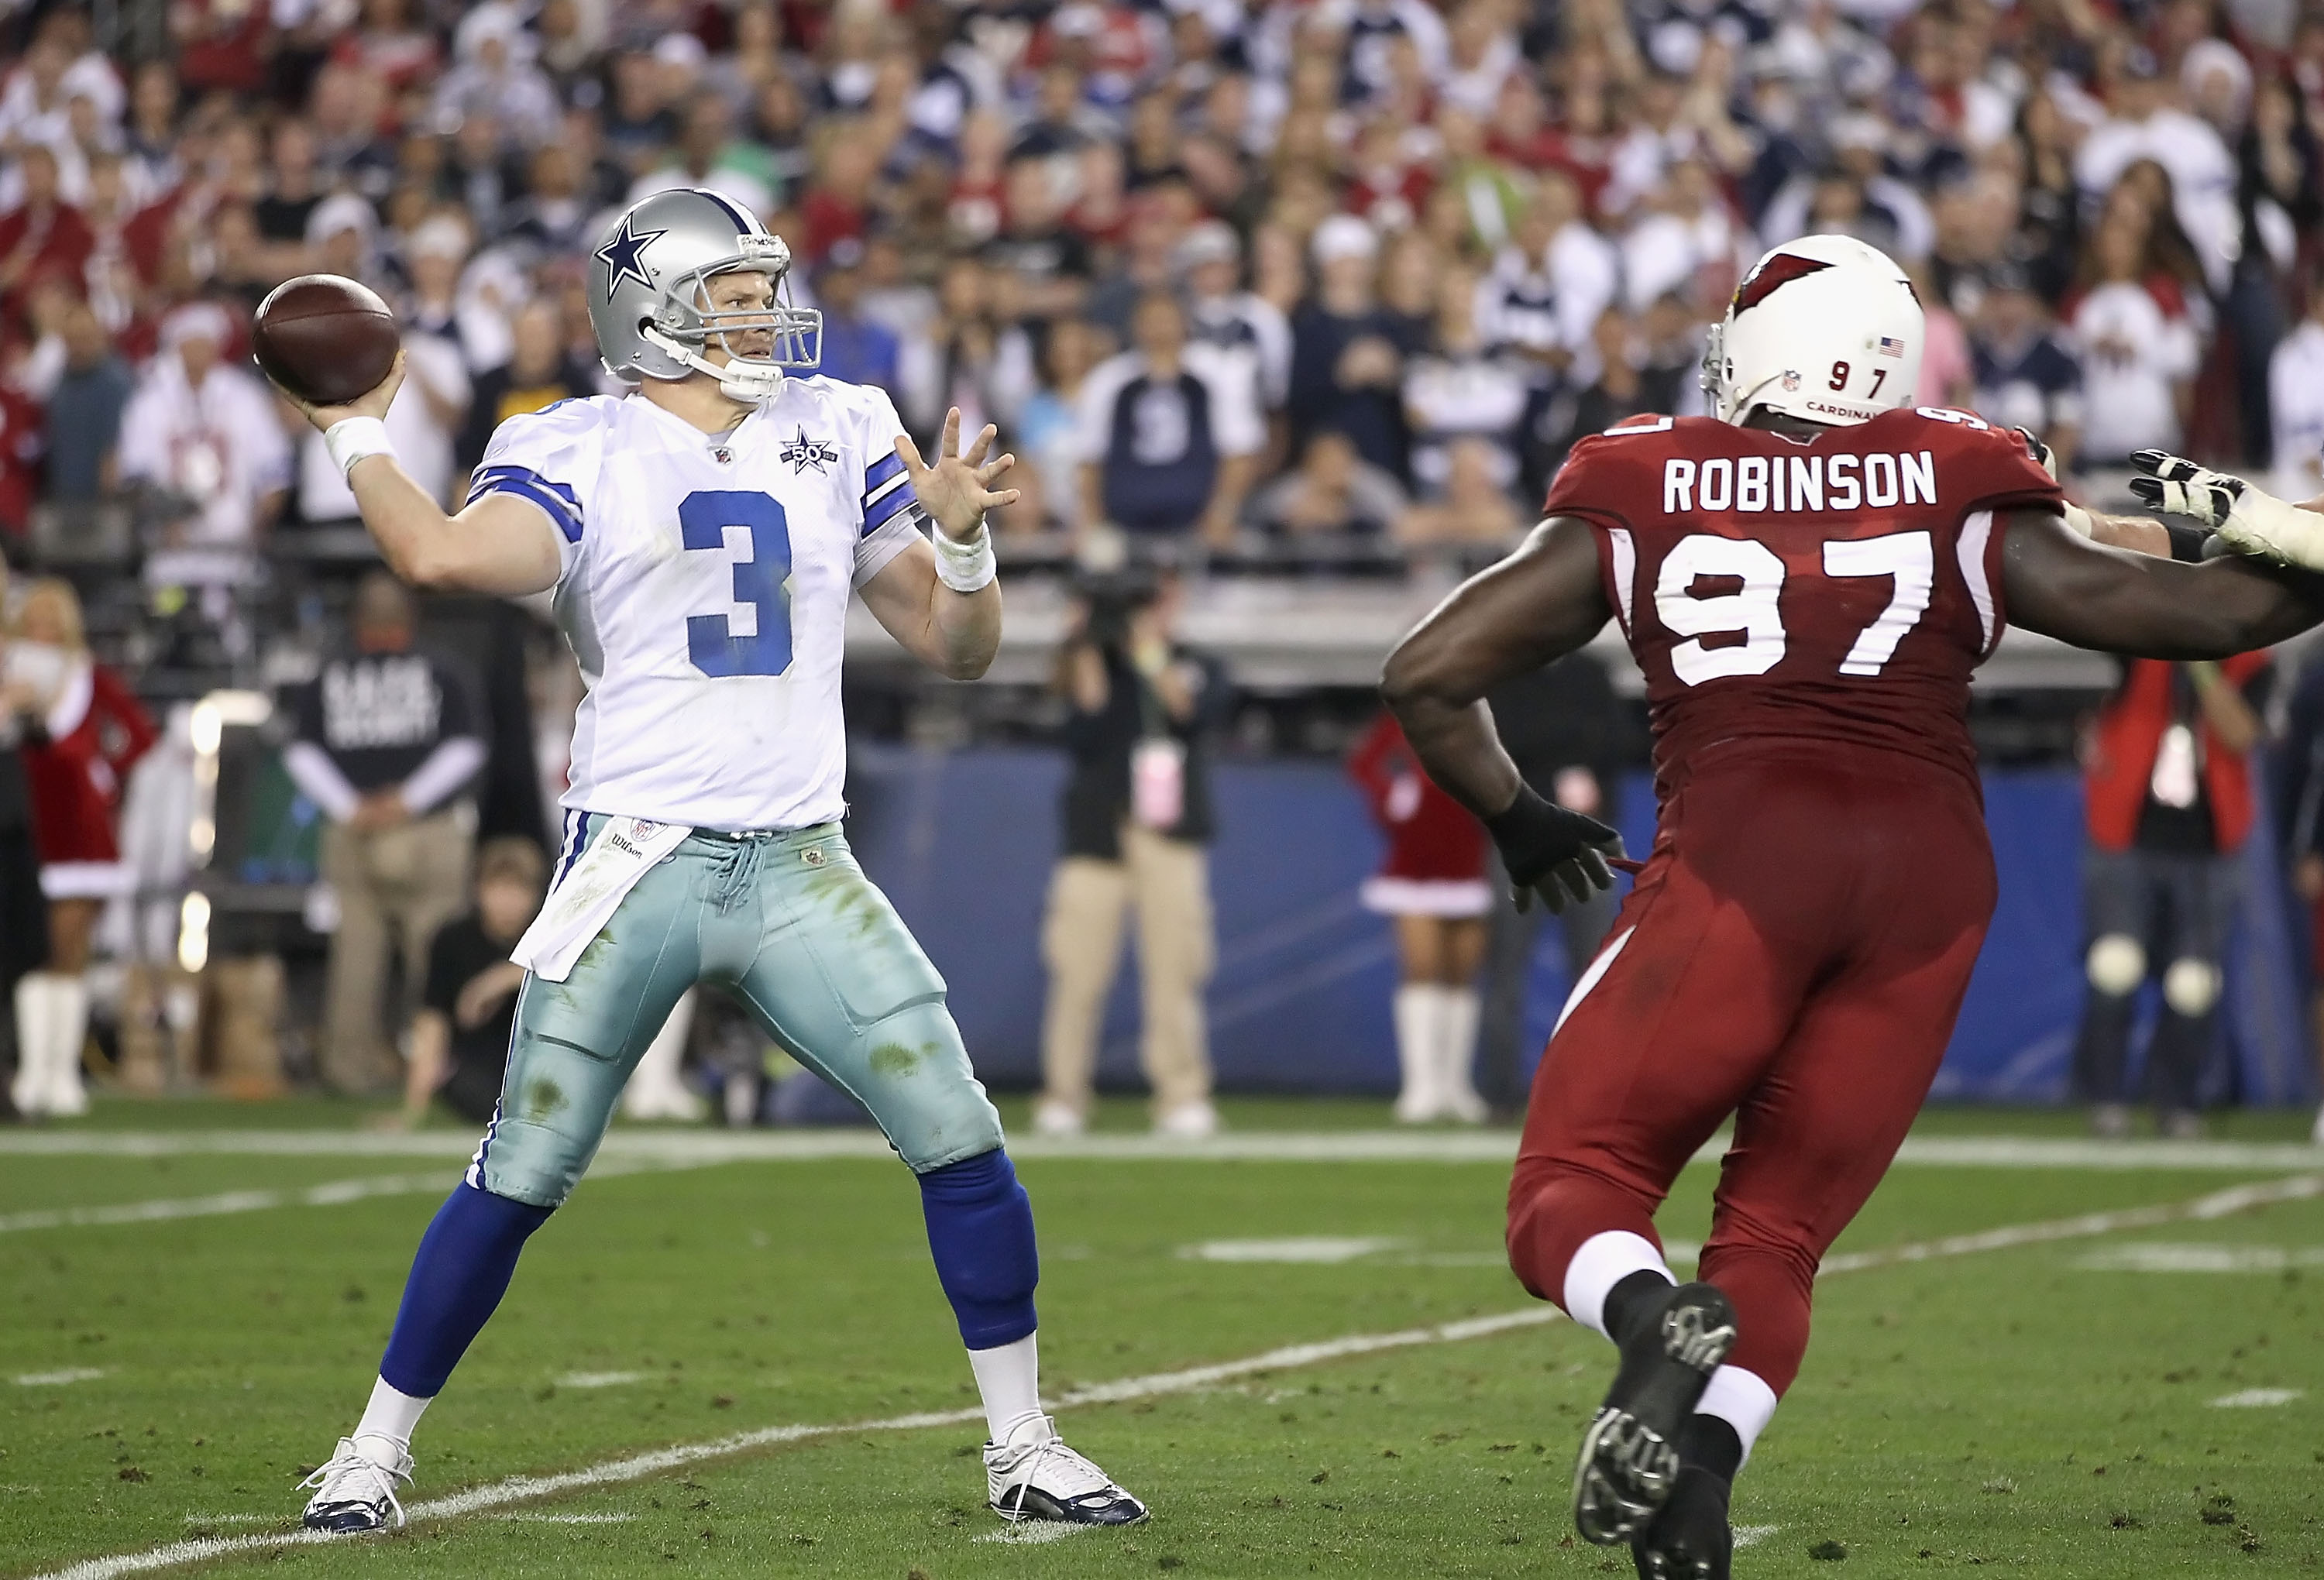 GLENDALE, AZ - DECEMBER 25:  Quarterback Jon Kitna #3 of the Dallas Cowboys throws a pass during the NFL game against the Arizona Cardinals at the University of Phoenix Stadium on December 25, 2010 in Glendale, Arizona. The Cardinals defeated the Cowboys